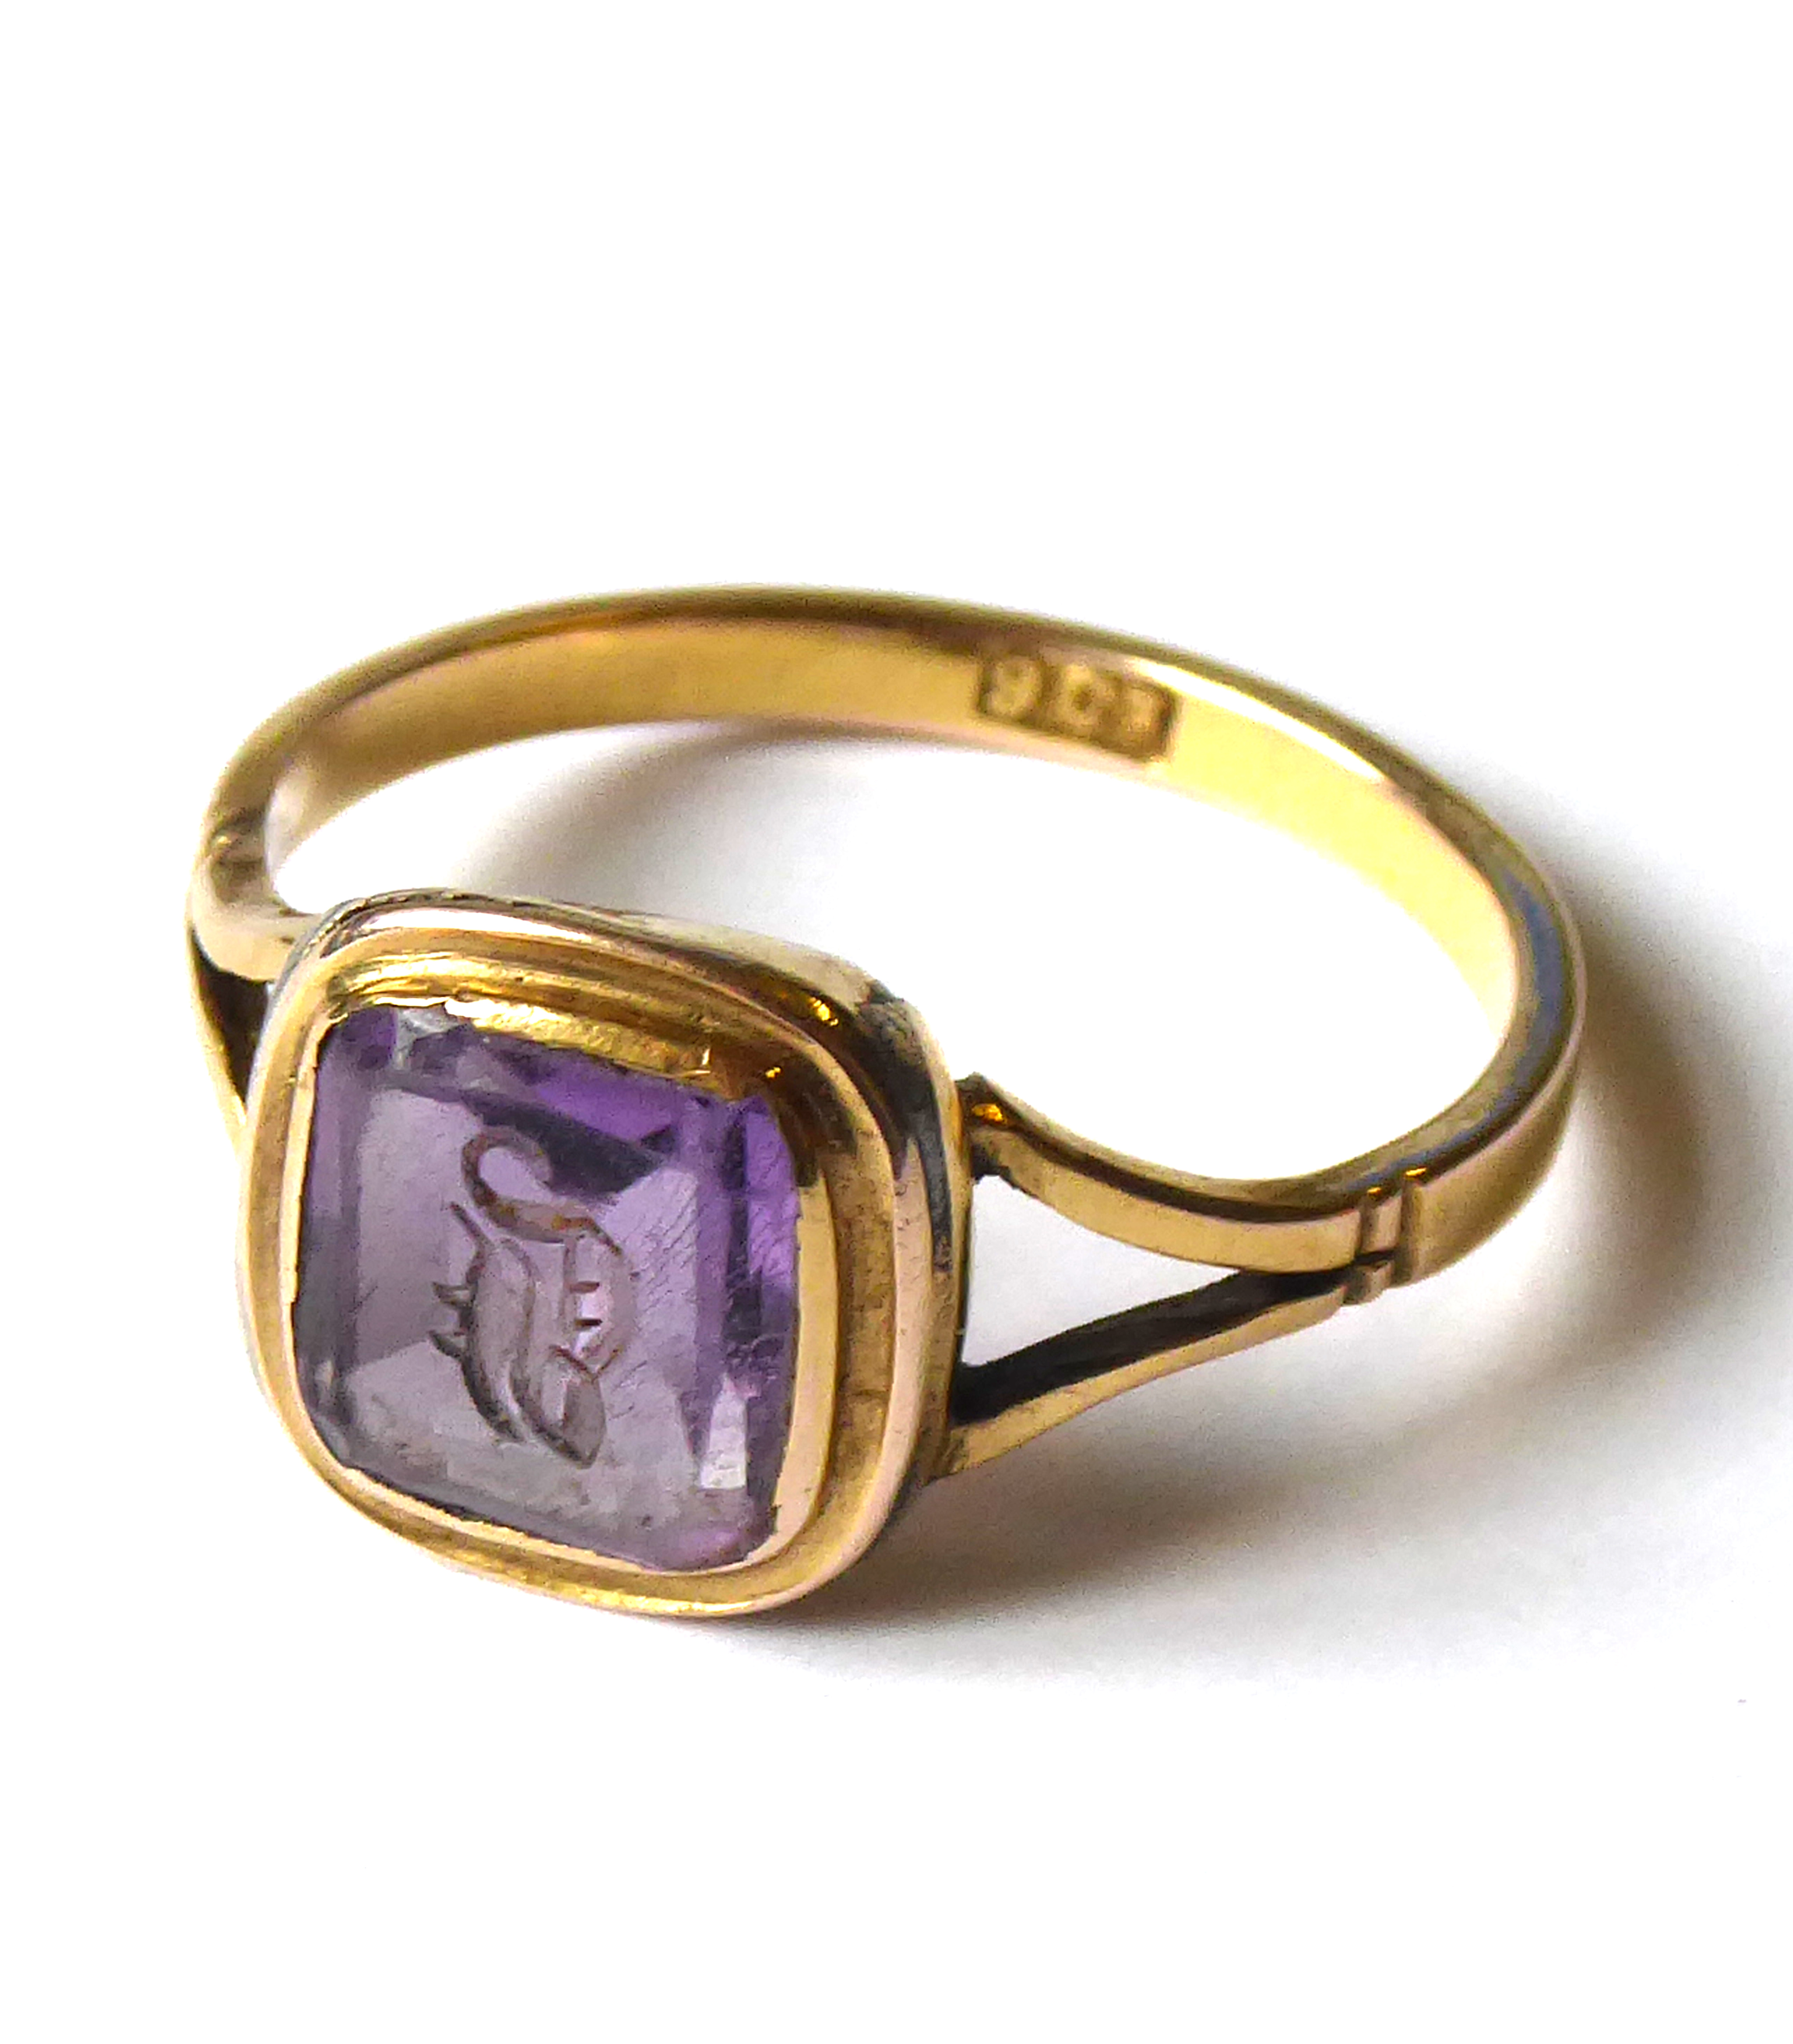 Lot 4 - A VICTORIAN 9ct GOLD AND AMETHYST INTAGLIO SIGNET RING Square form carved with a gothic monogram